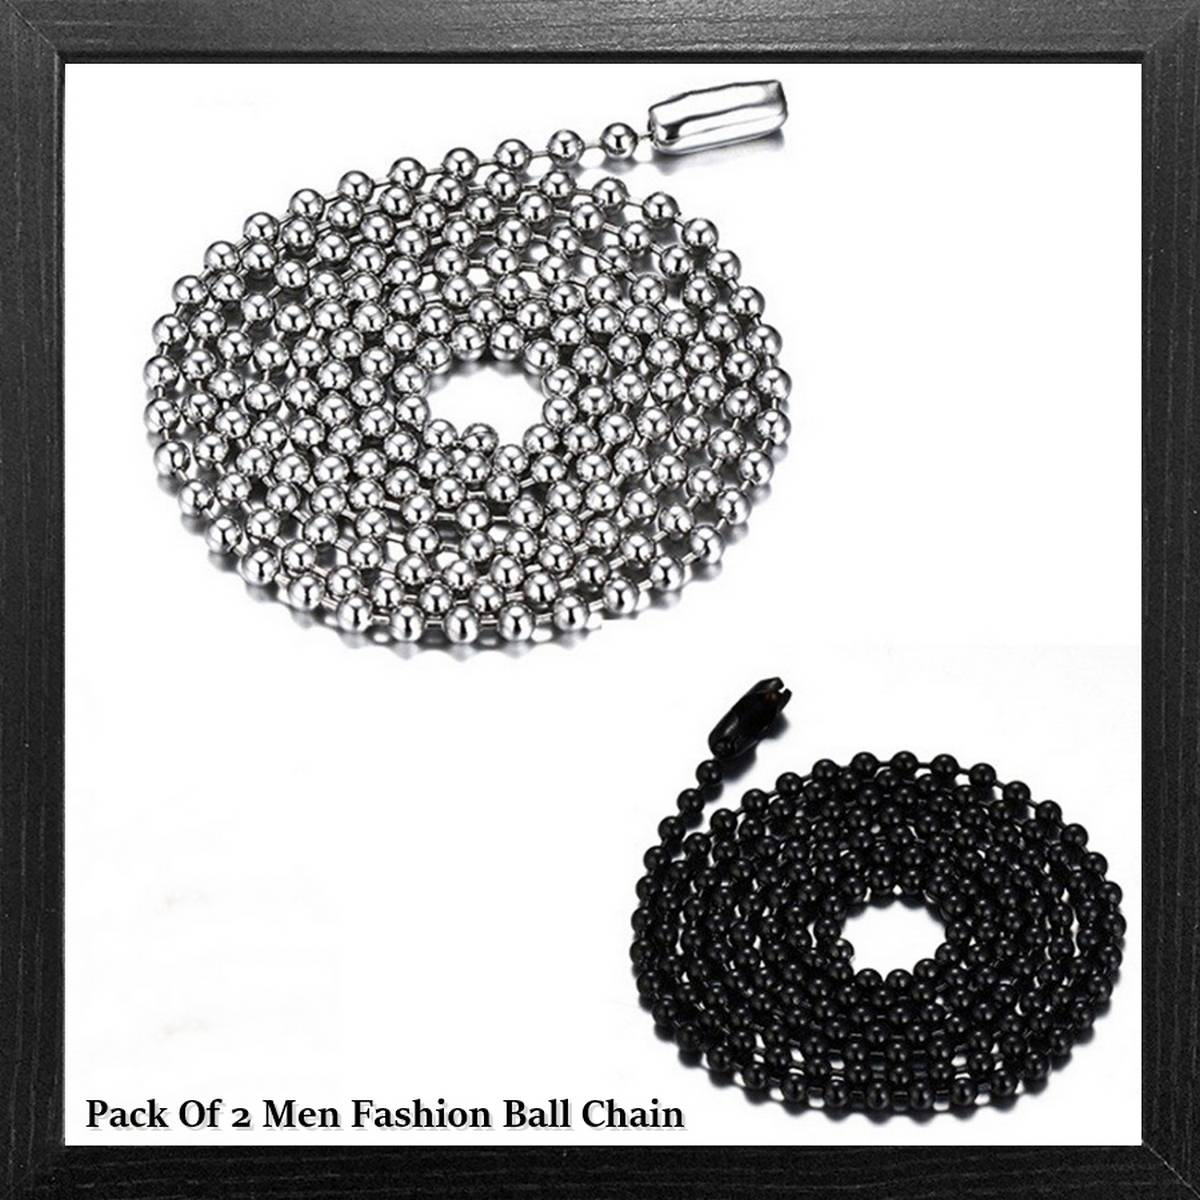 Pack Of 2 Fashion Jewelry Women Men Stainless Steel Silver / Black Necklace Beads Ball Chain